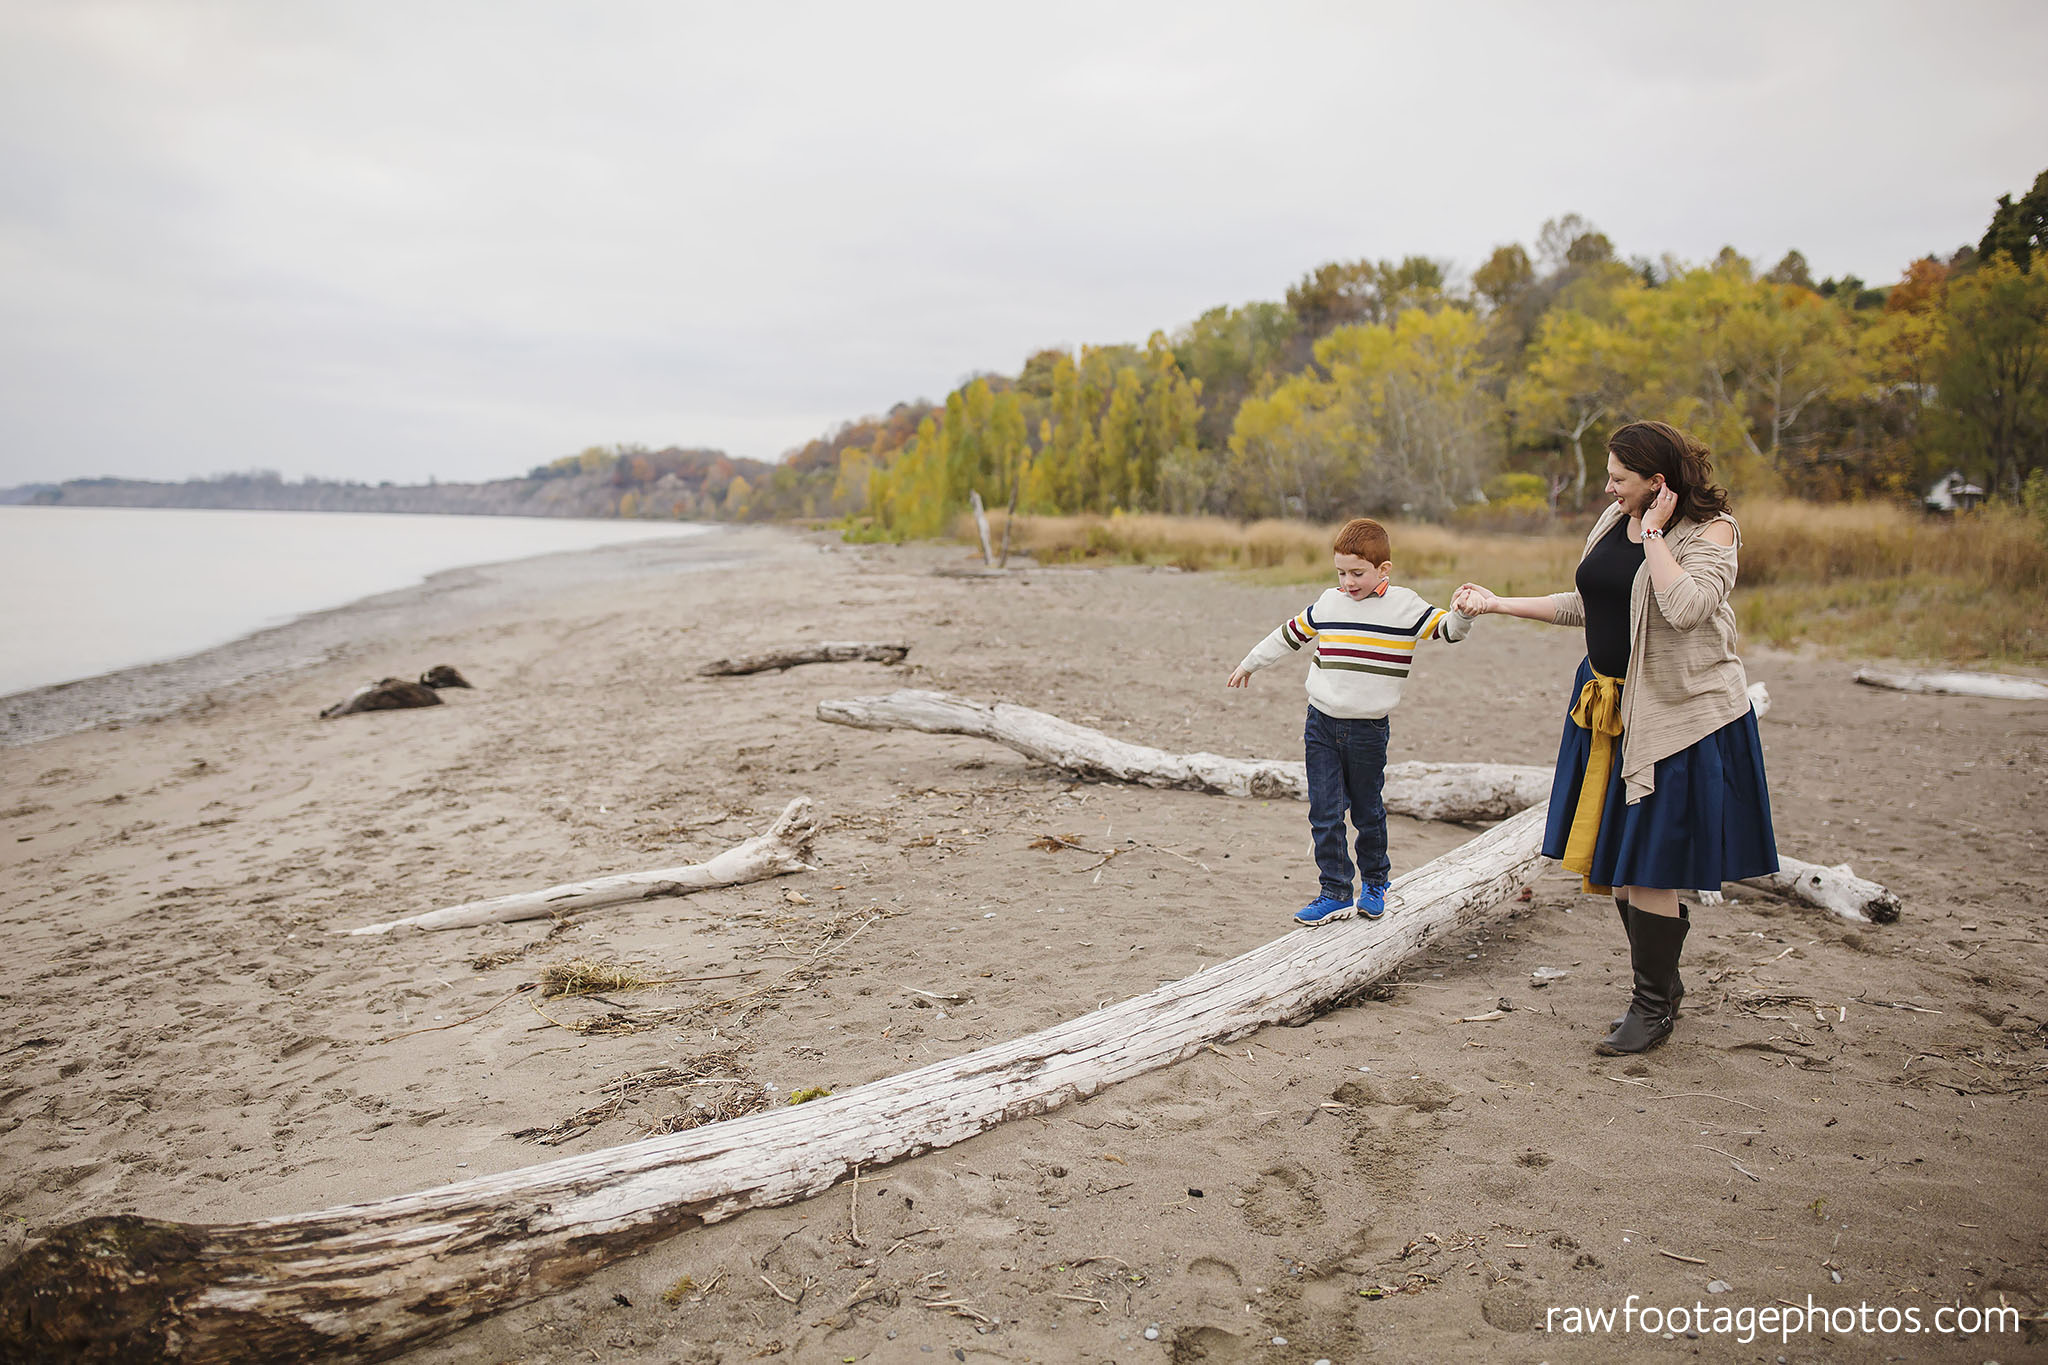 london_ontario_family_photographer-port_stanley_photography-raw_footage_photography-family_photos-beach_photos-fall_family_photos-lifestyle_family_photography-candid_photographer017.jpg